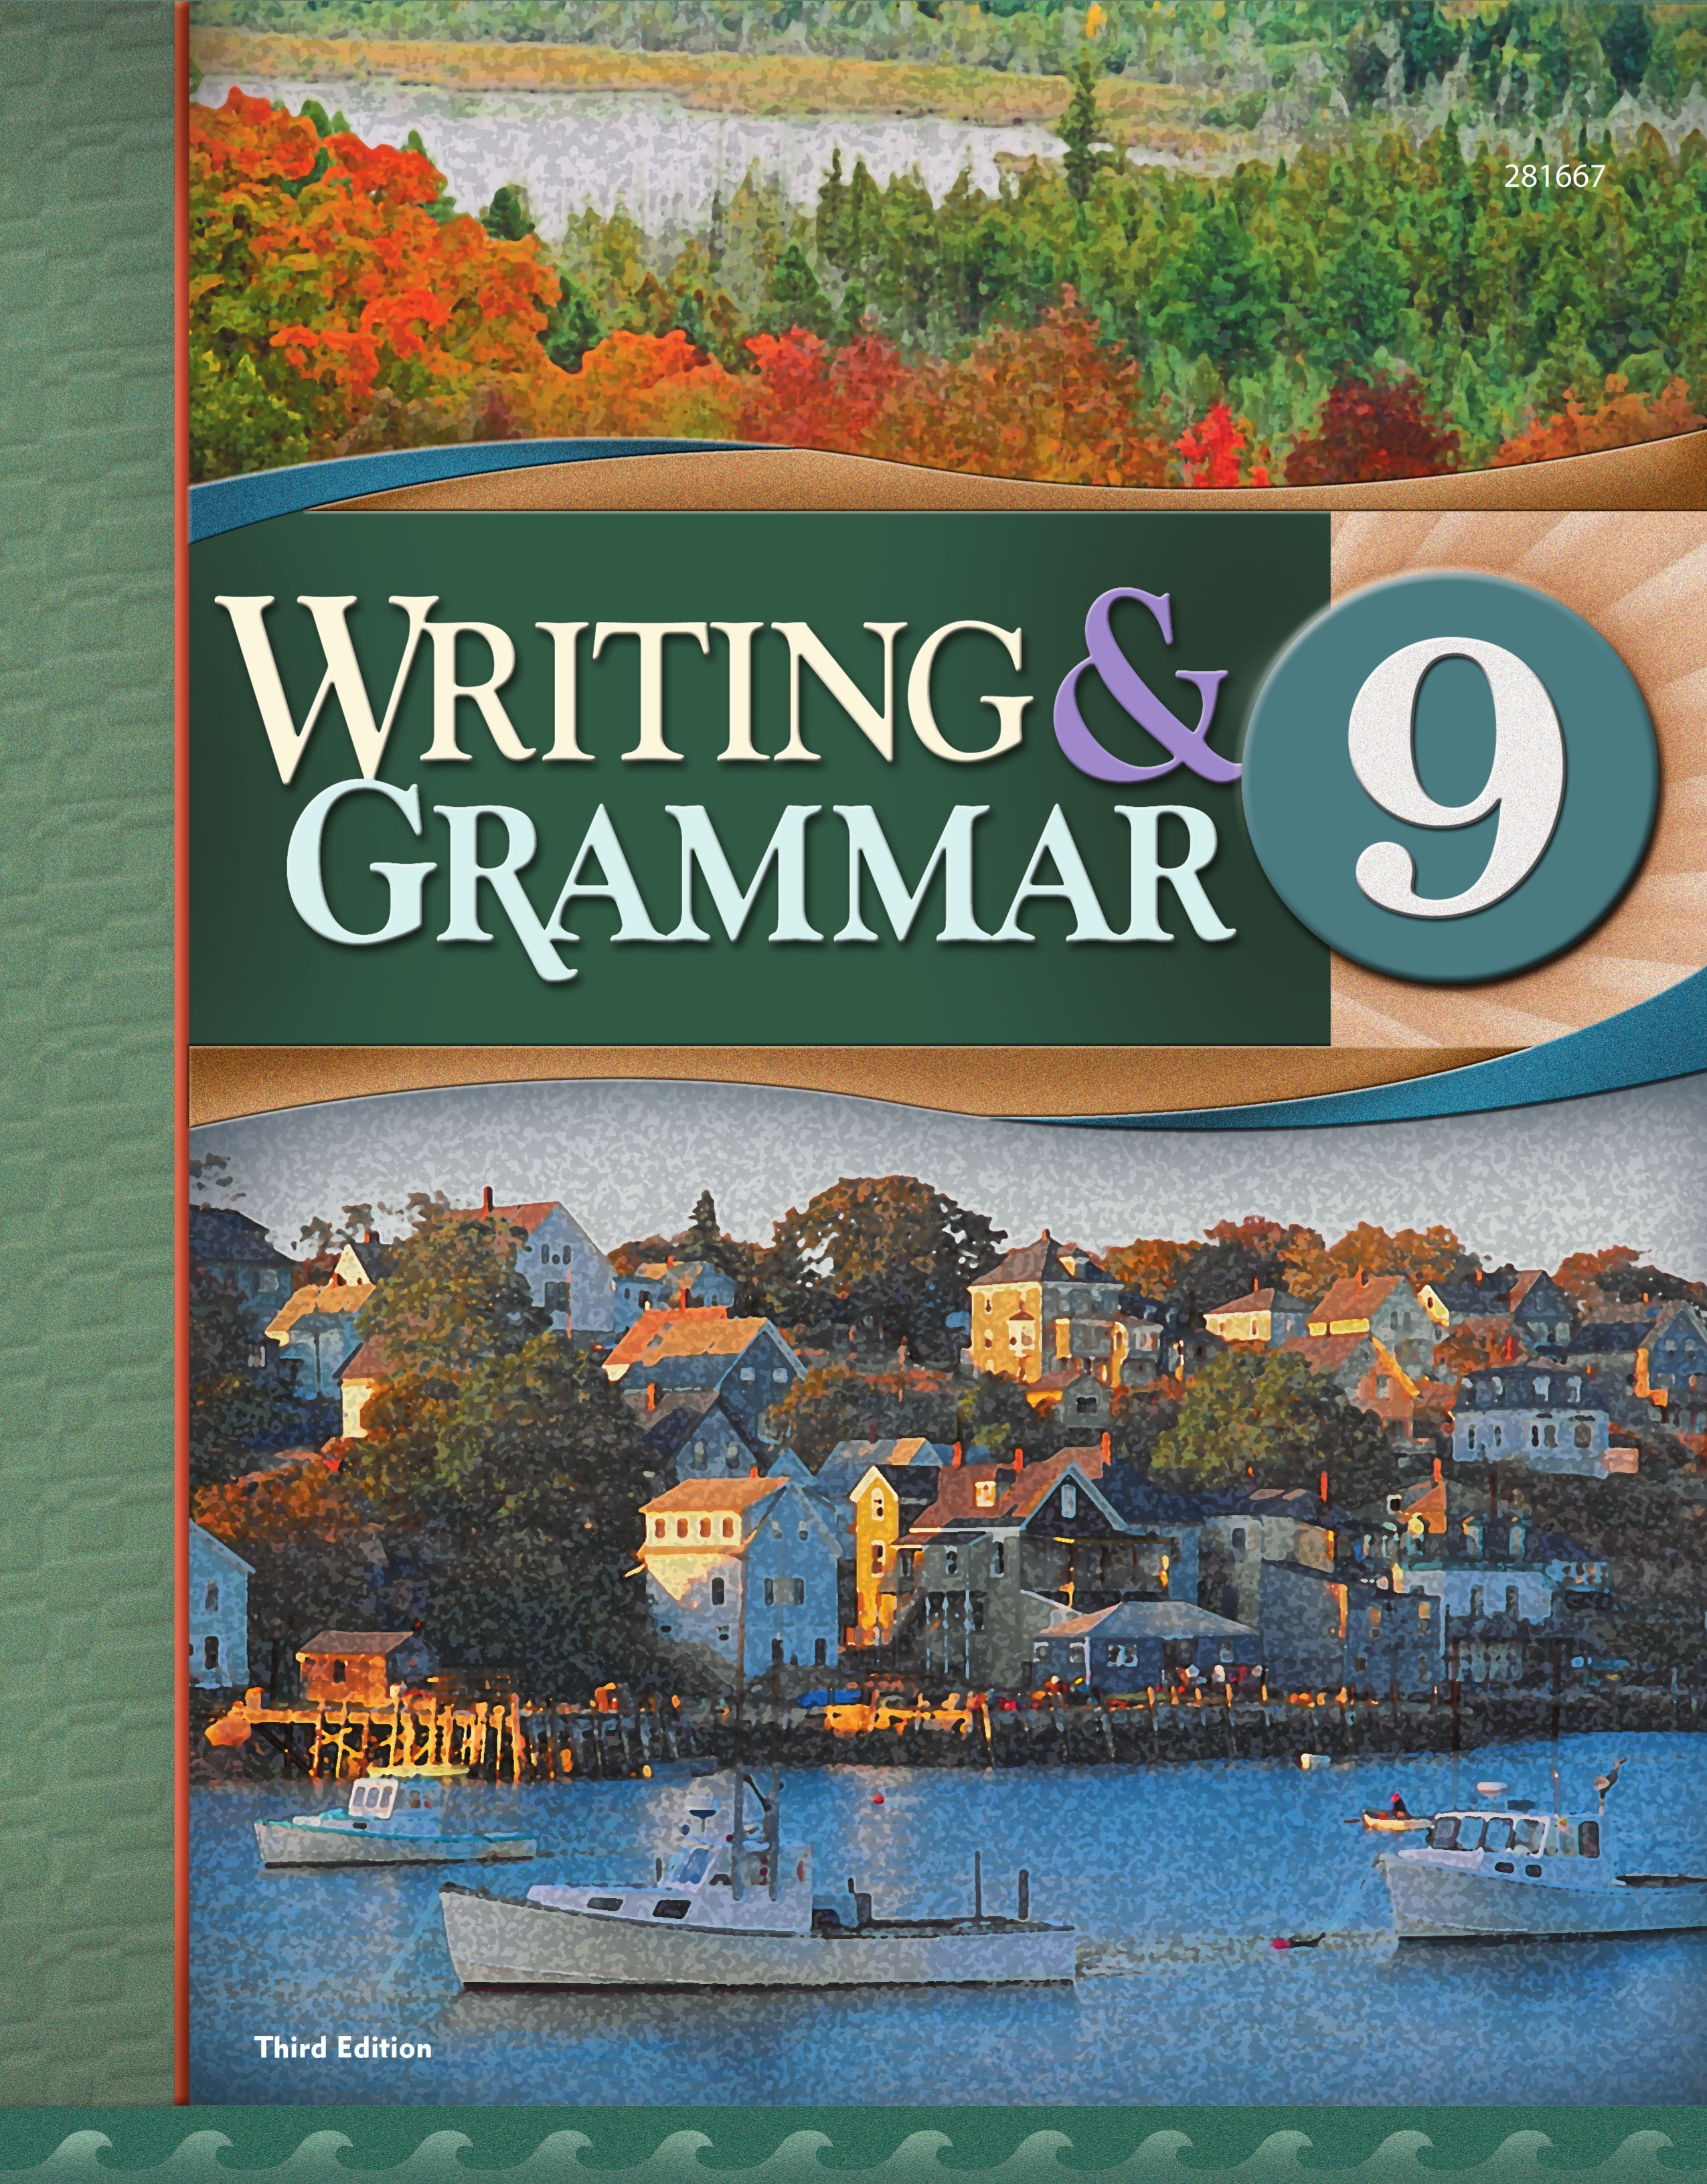 Writing and Grammar 9